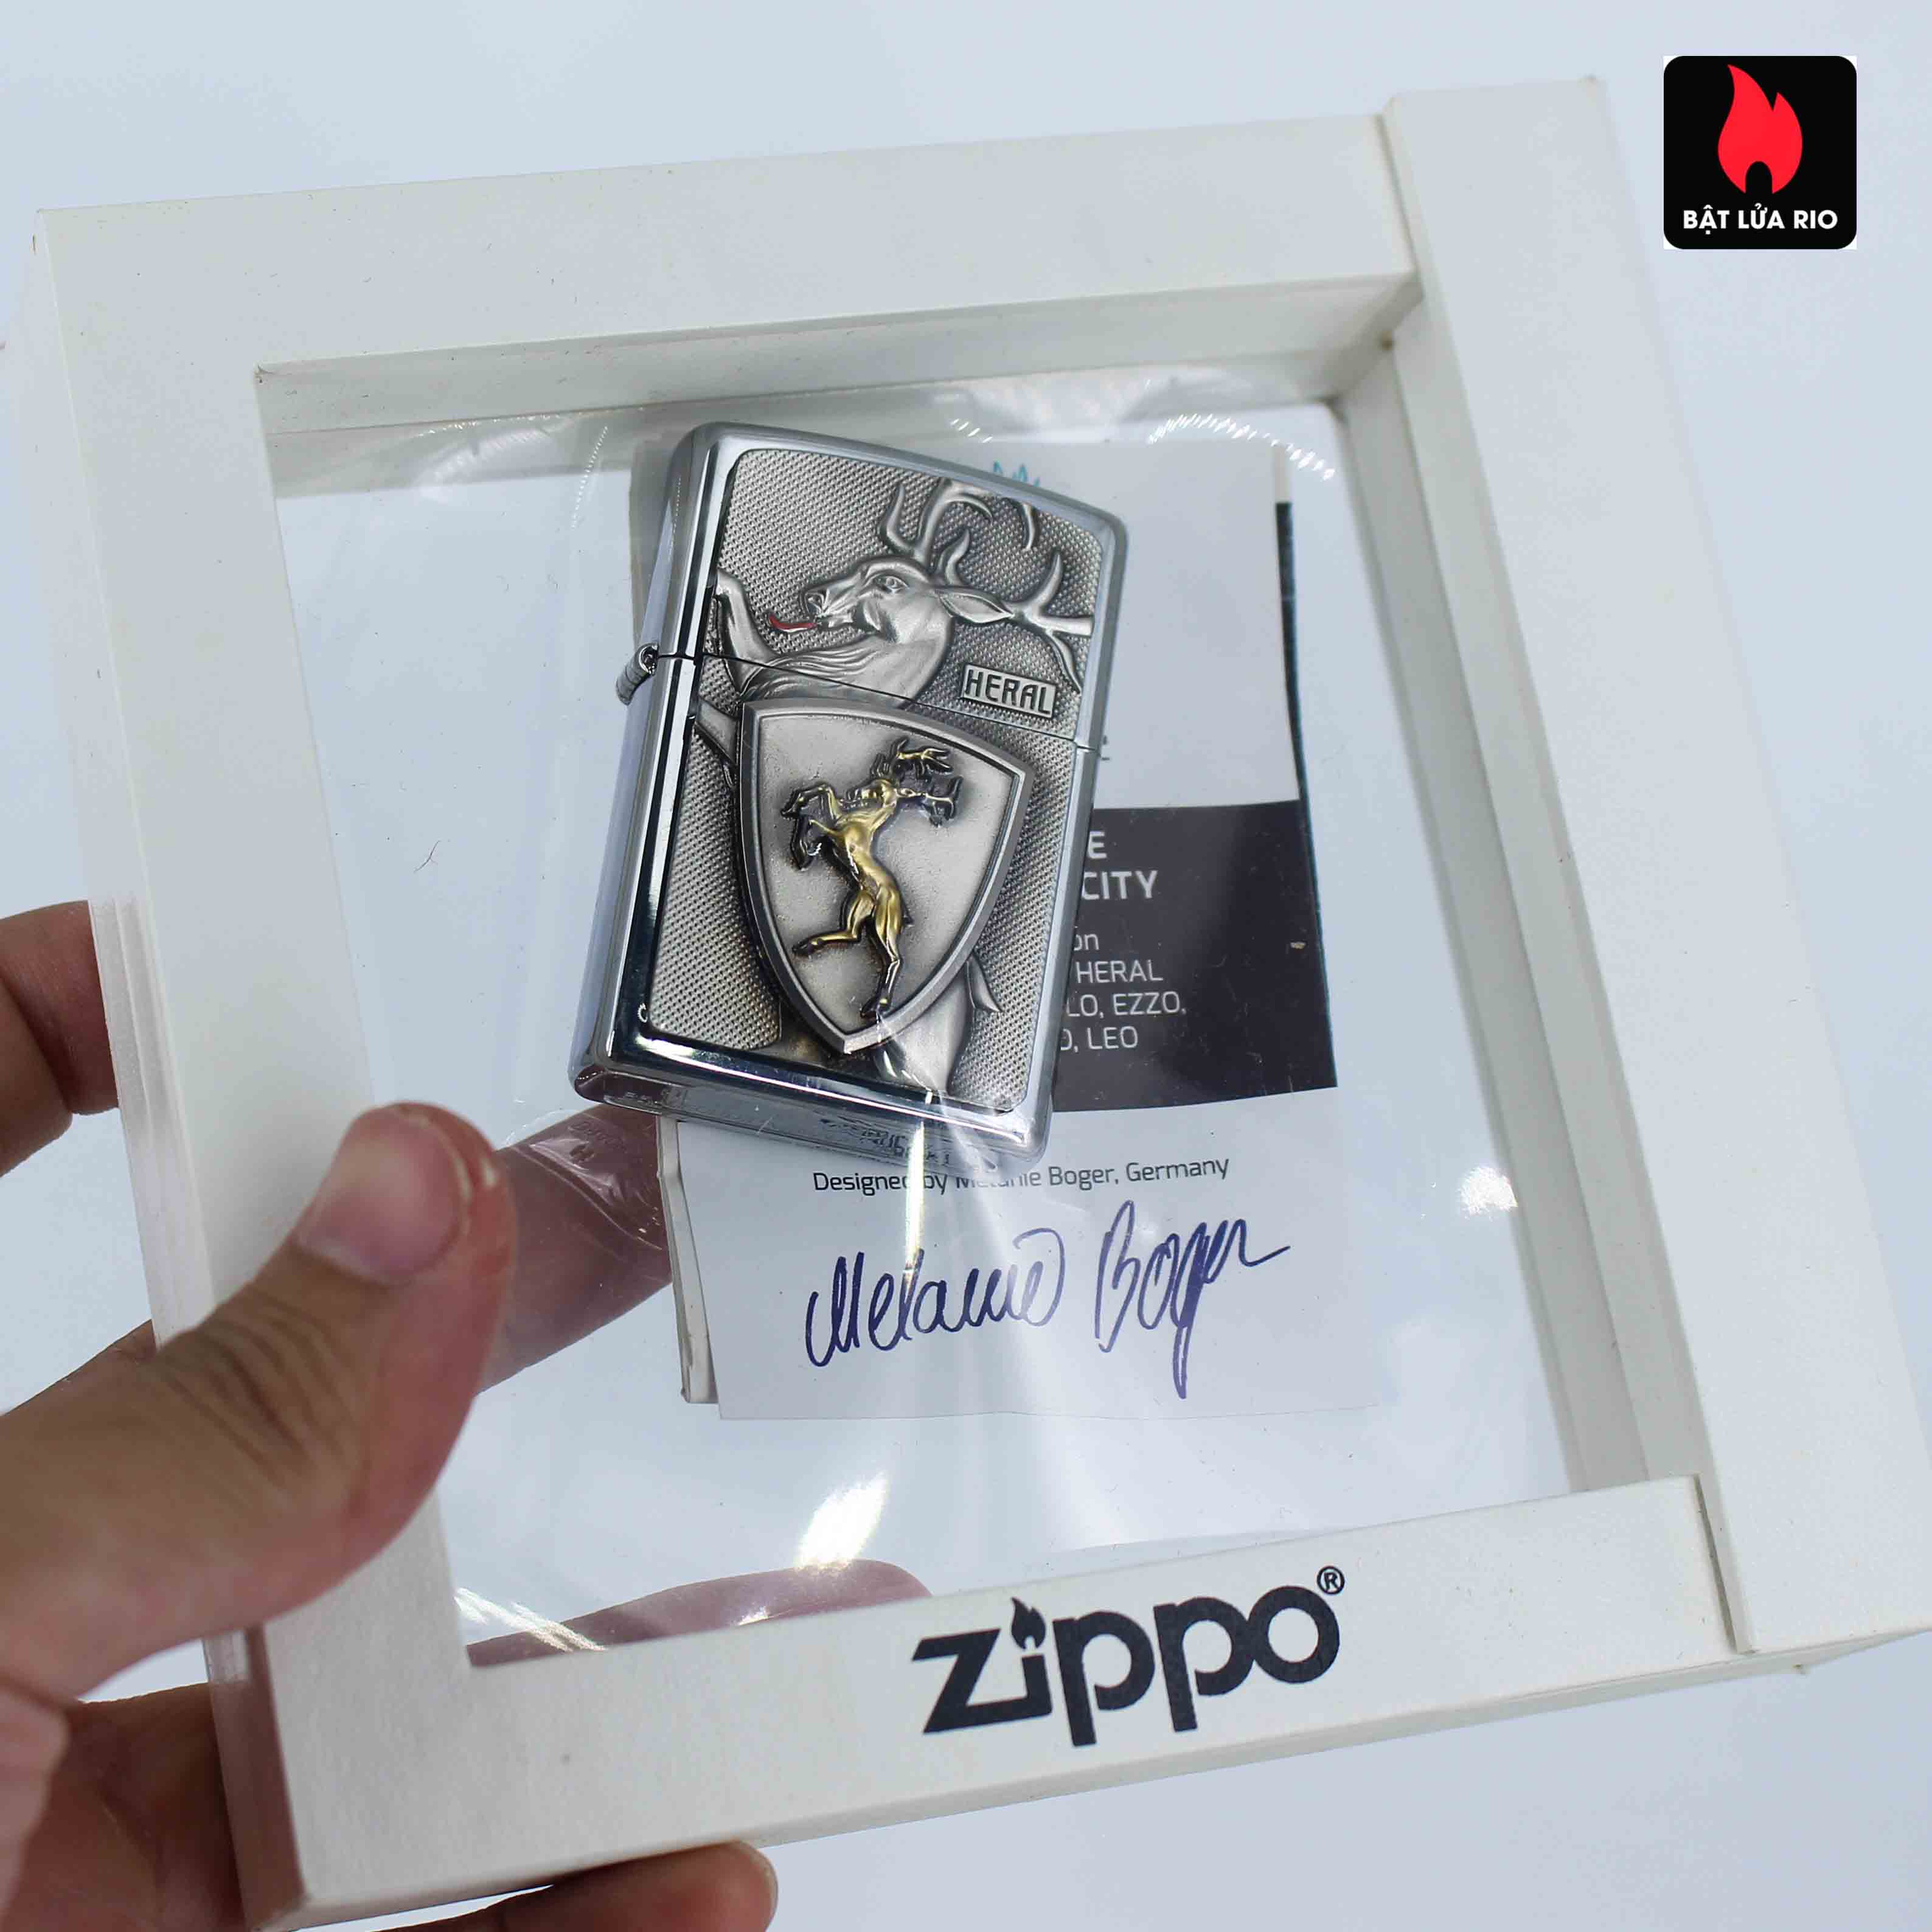 Zippo Set 2014 - Collectible Europe Animal Heral Arco Zippo Lighter Limited Edition 4